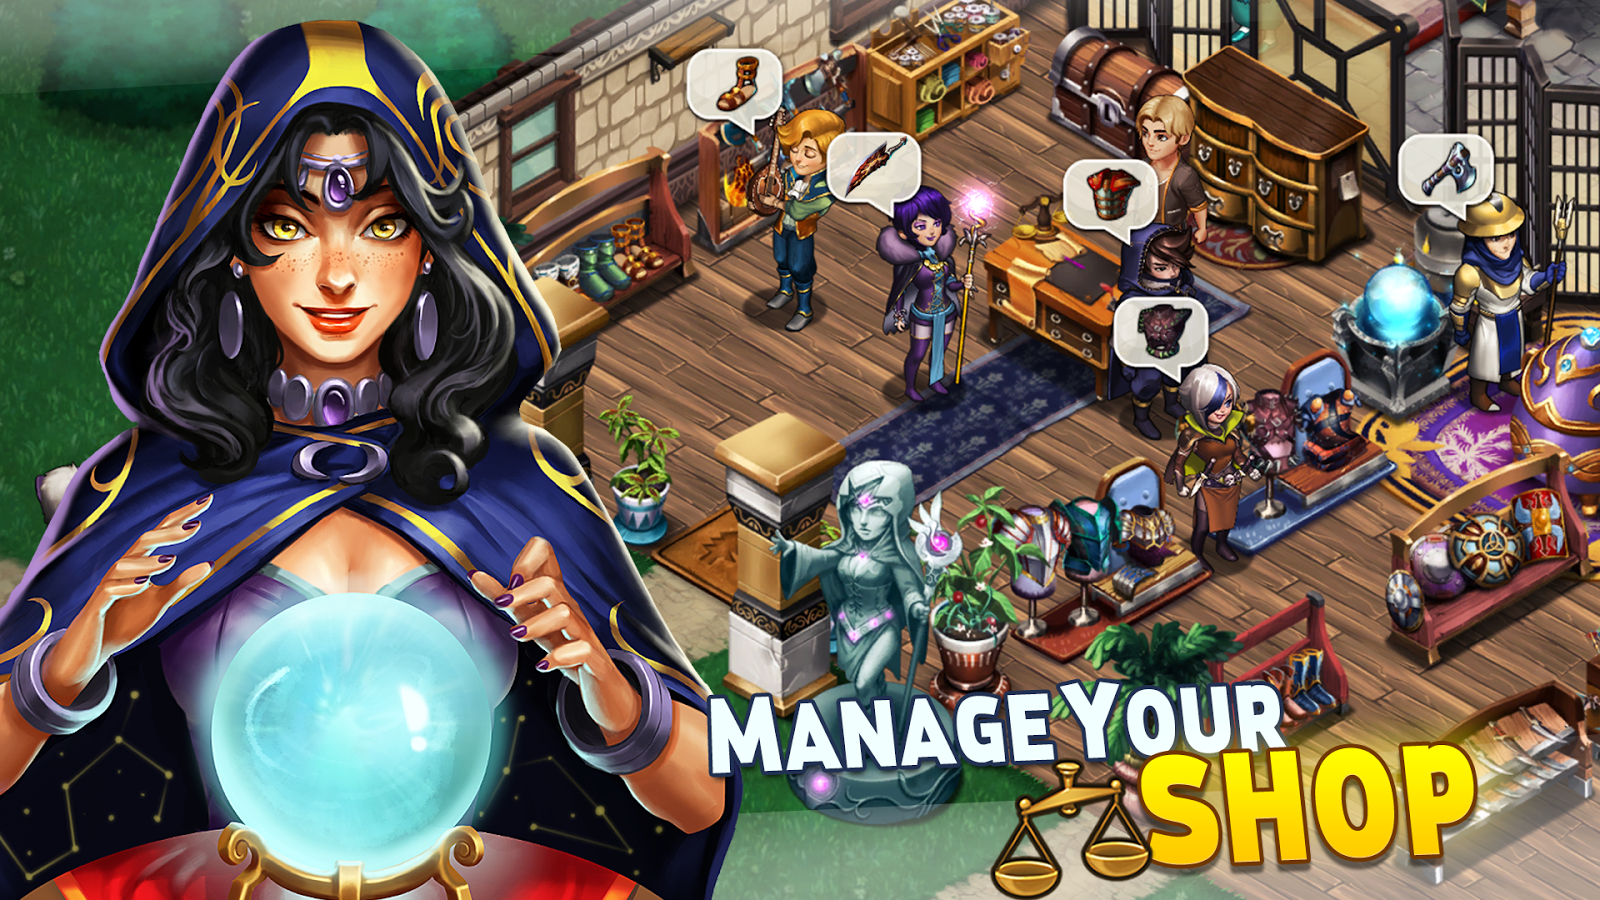 Shop Heroes Screenshot 1